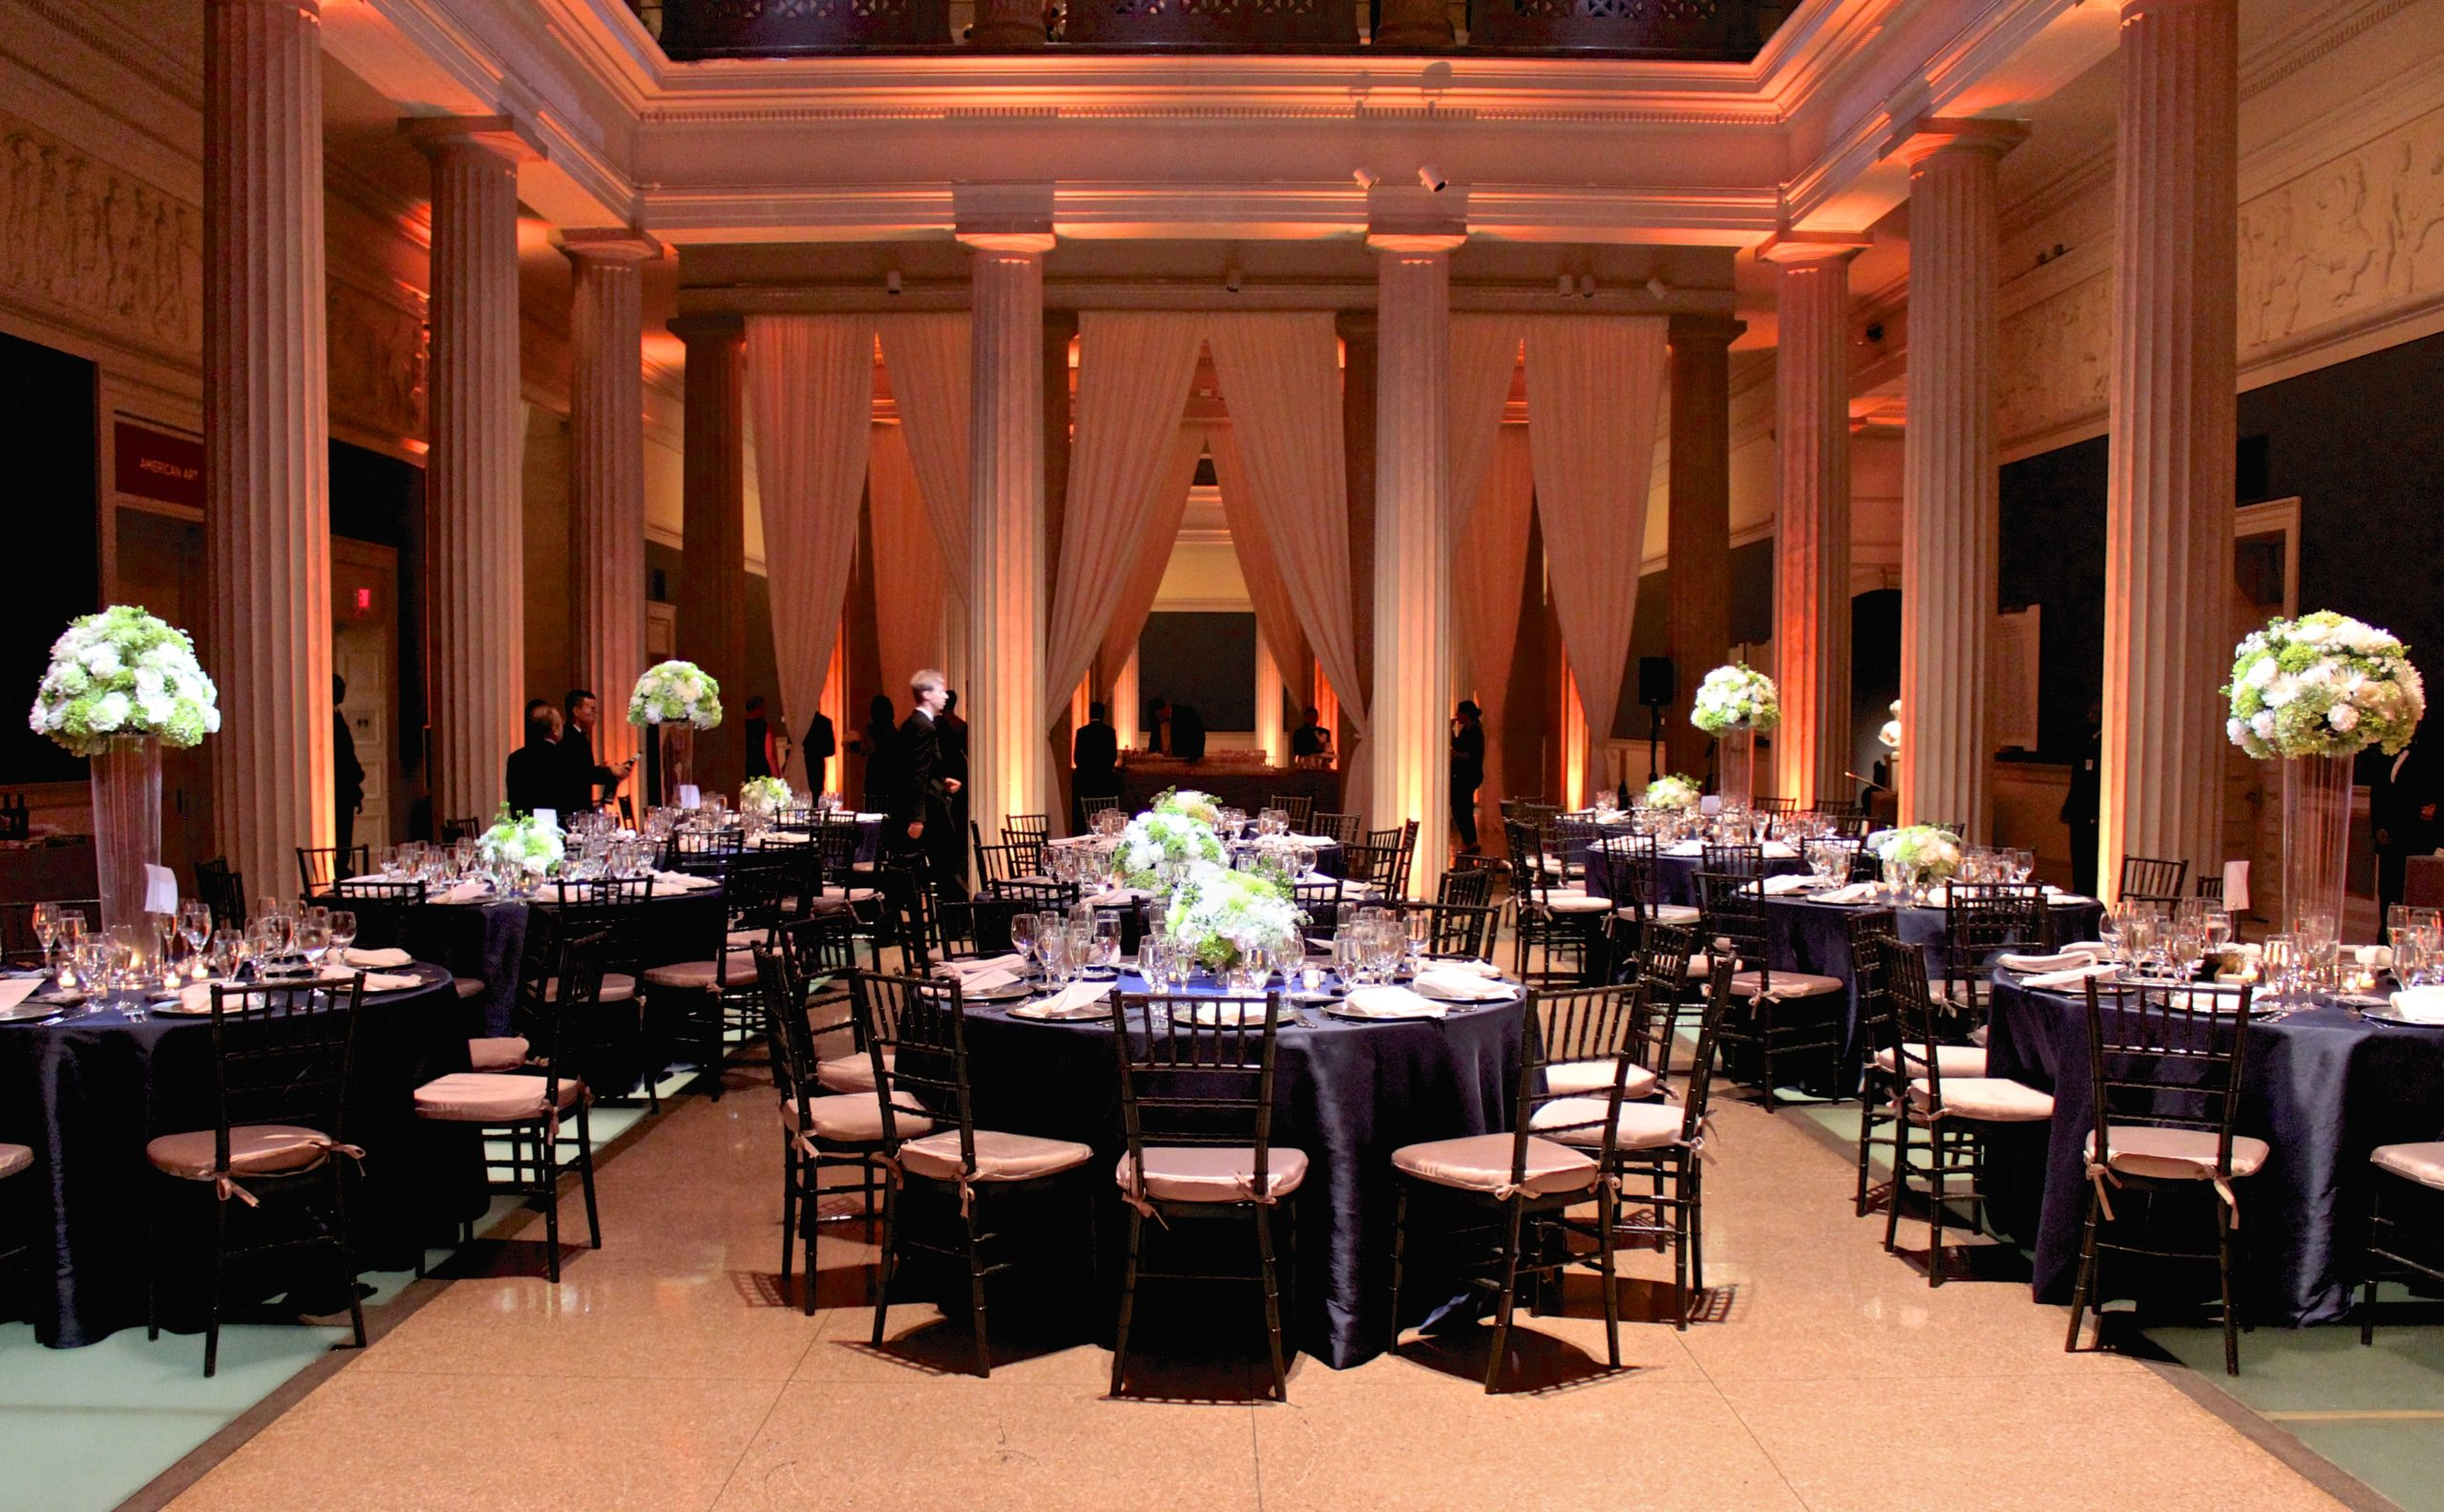 rent uplights washington dc free next day delivery superlative events